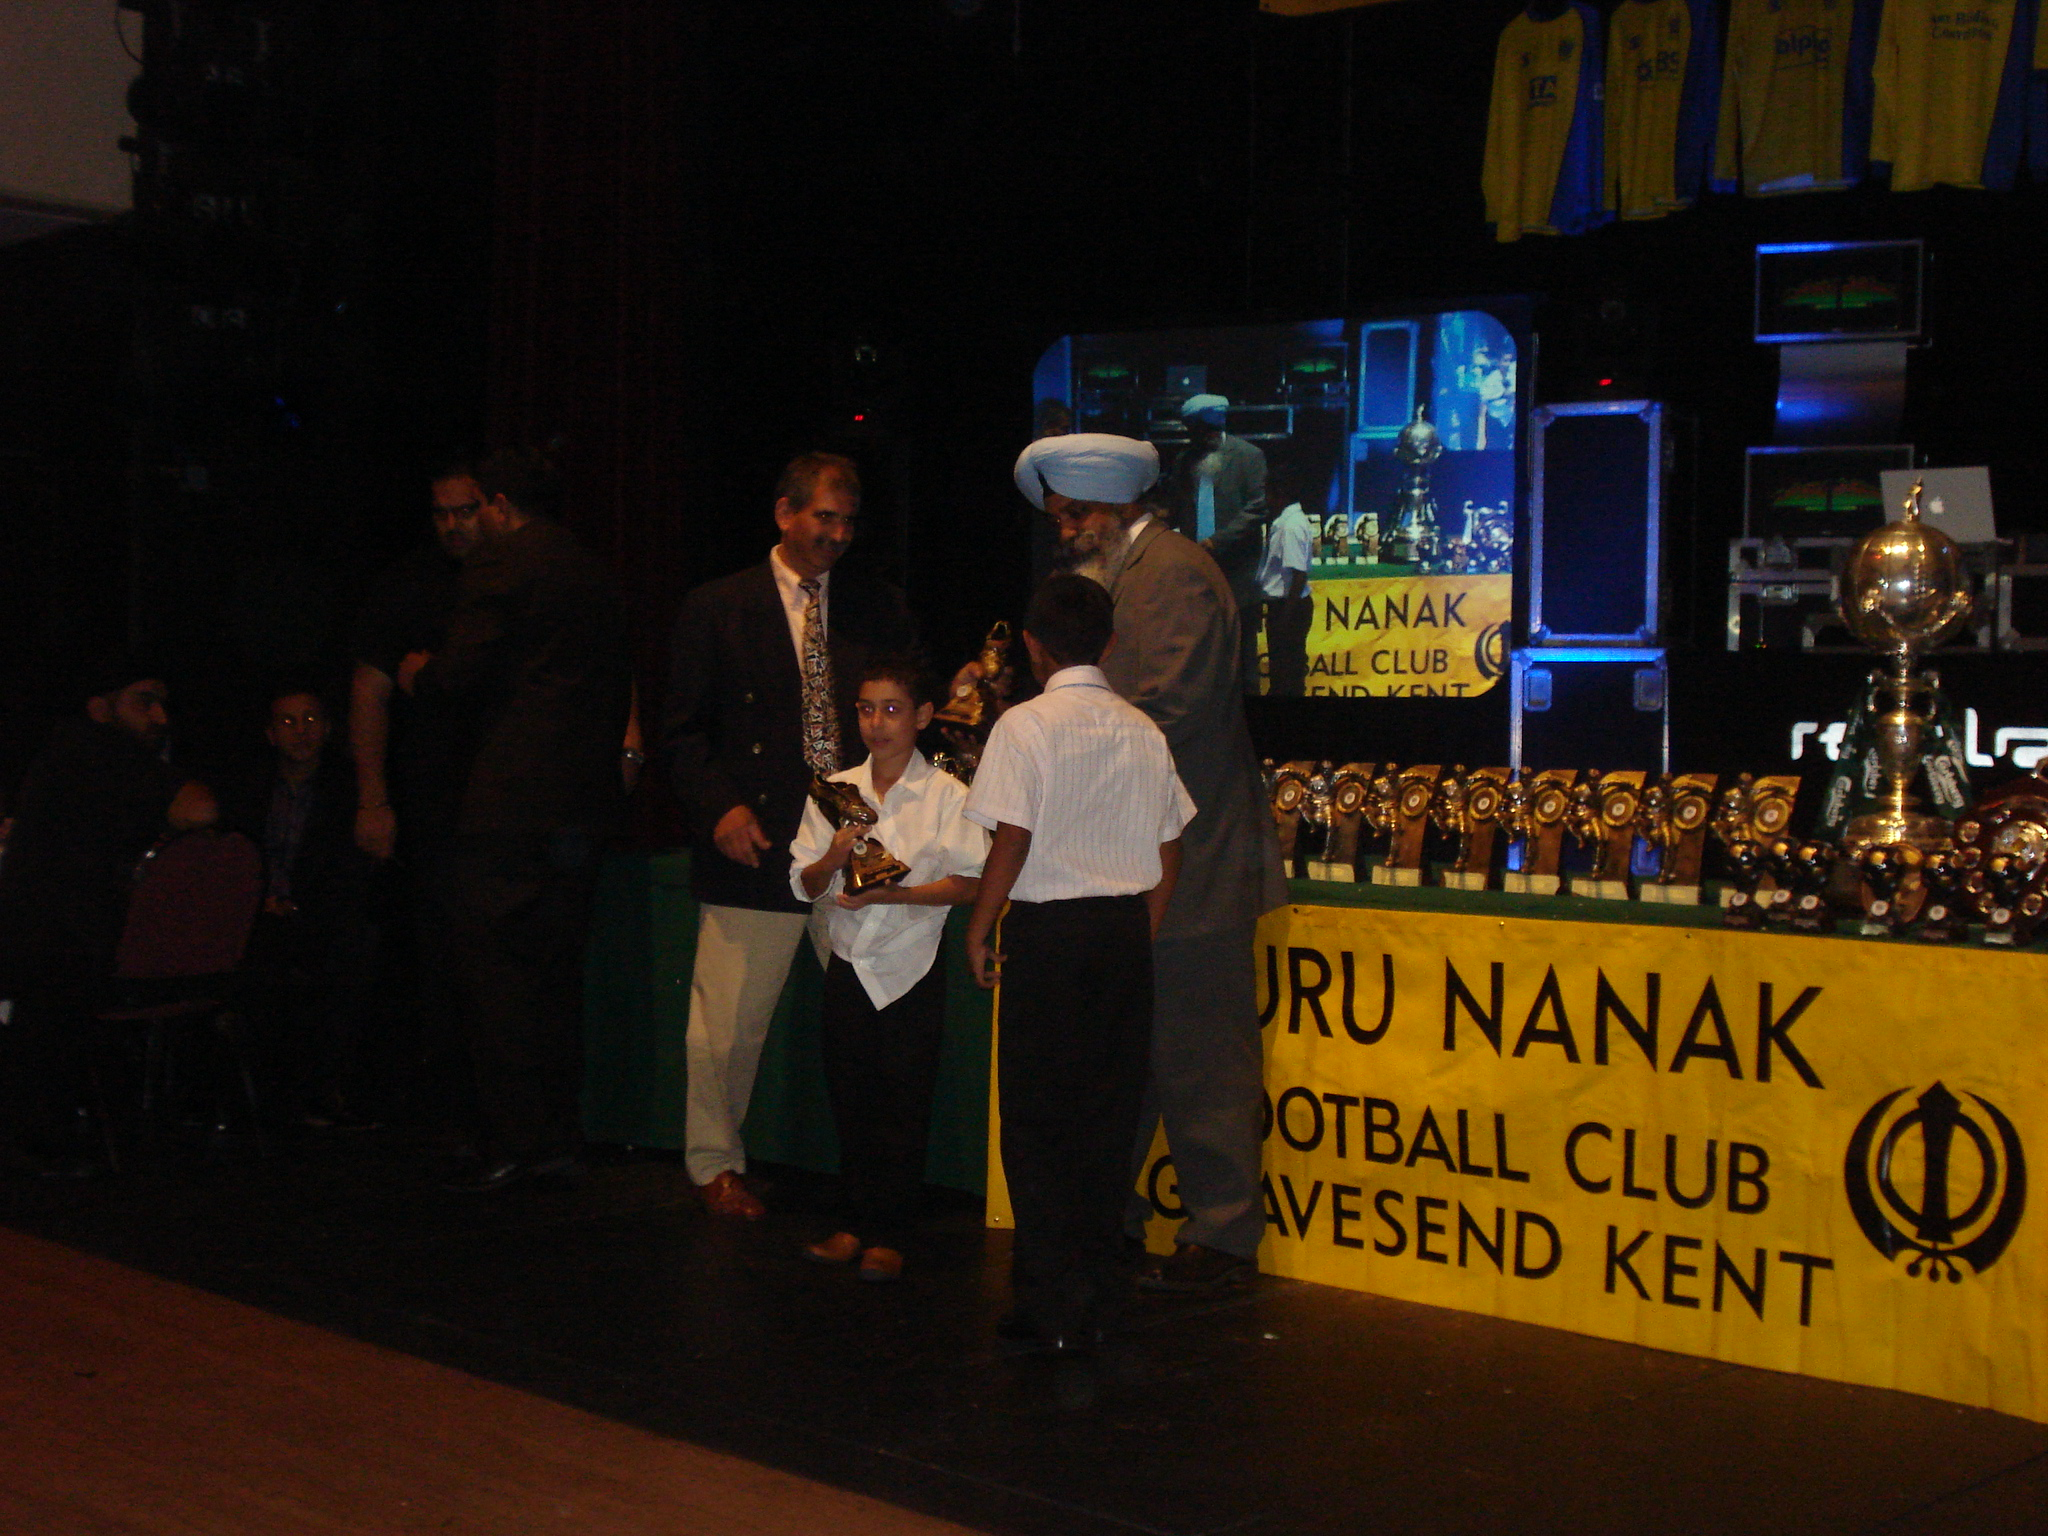 2008 Under 8's Top Goal Scorer - Hardeep Manu (17 goals)